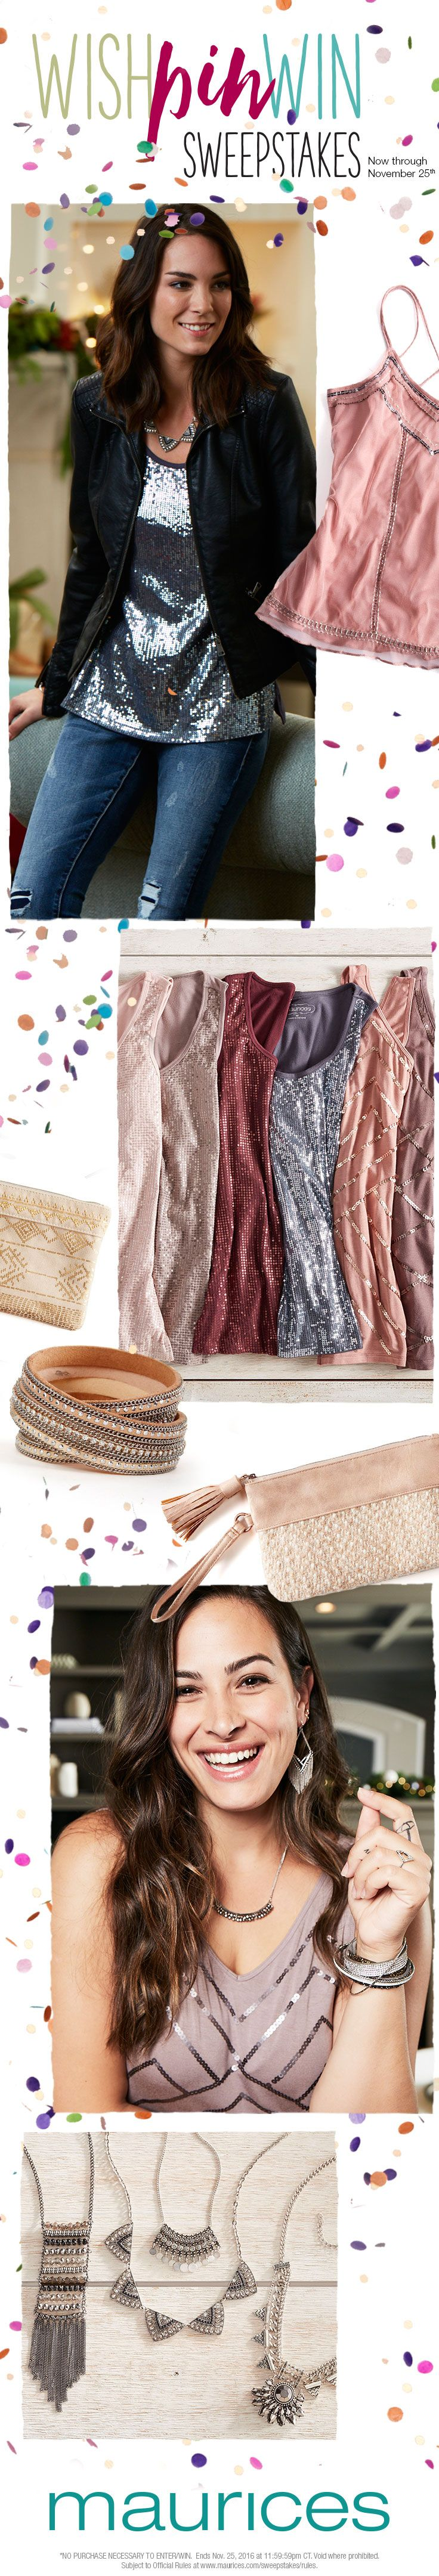 Wish, wish, hooray! You could win must-have maurices sparkle on your wish list today (up to $225 value) when you enter our Wish Pin Win Sweepstakes now through 11/25/16. ENTER NOW: www.maurices.com/sweepstakes